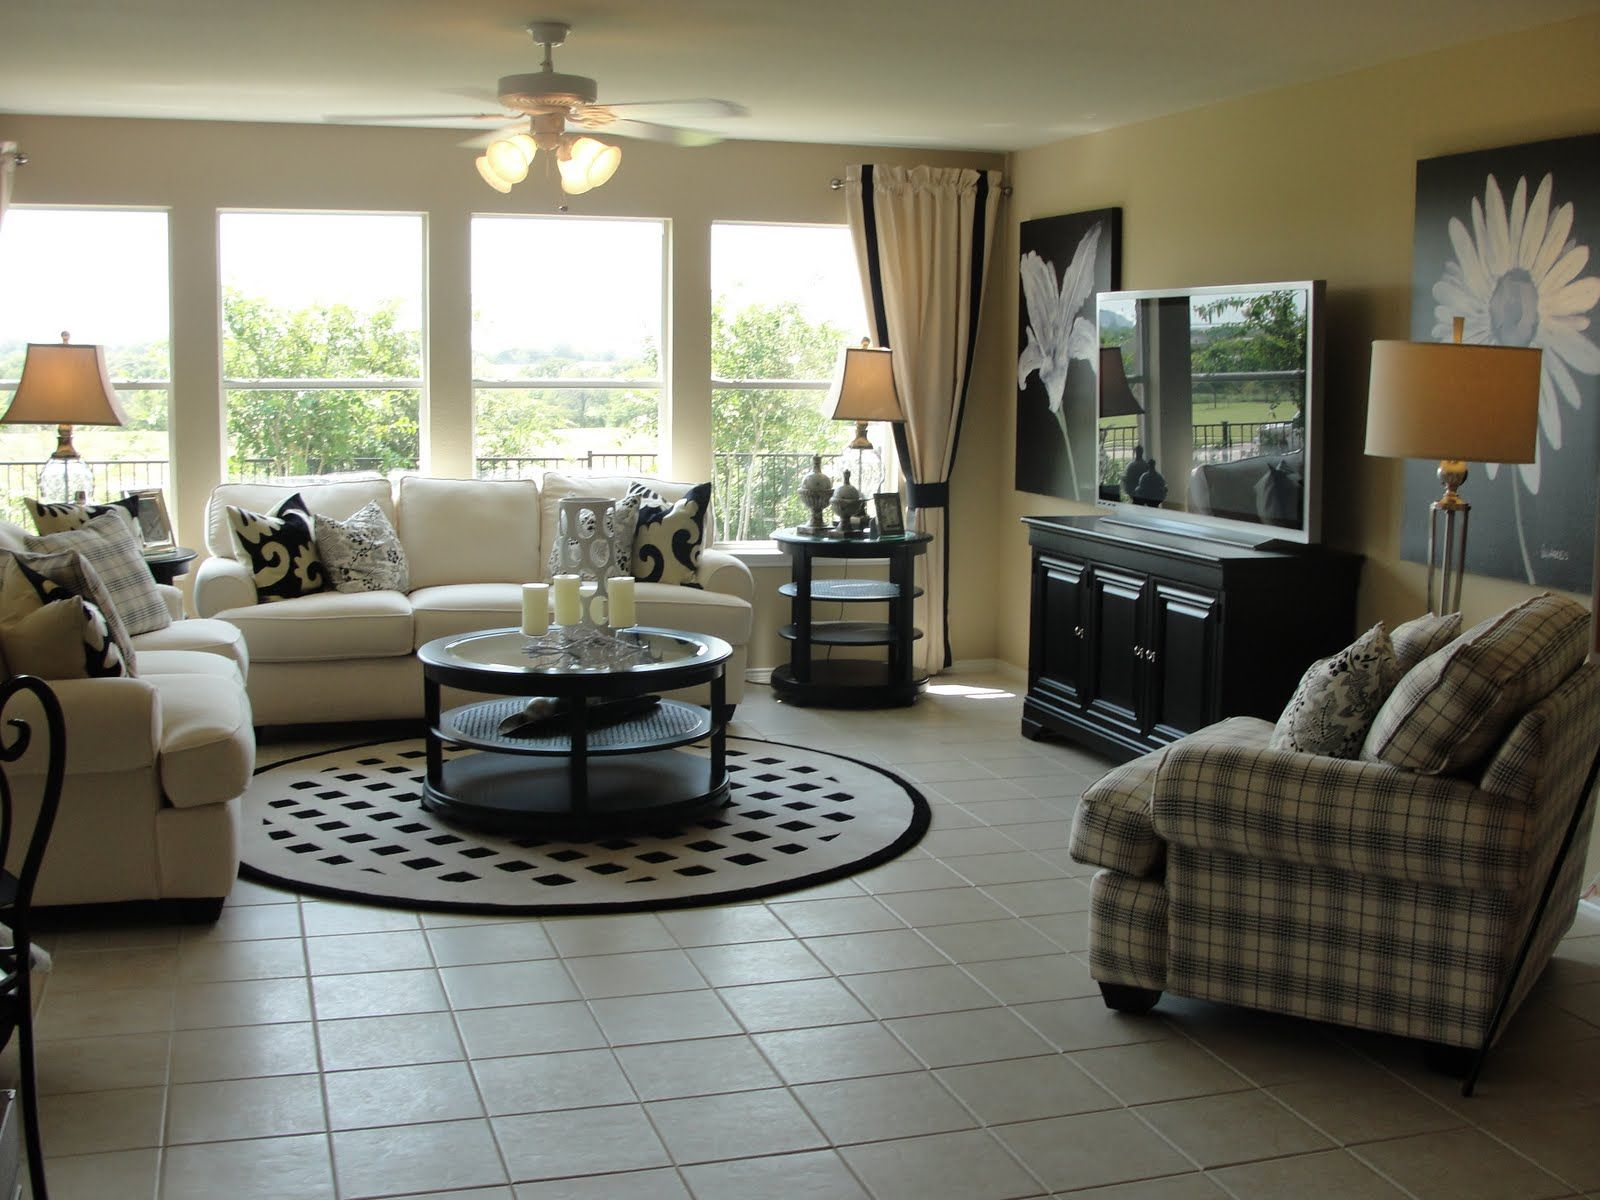 Model Homes Images Interior Pulte Homes Interior Pulte Homes The Greens At The